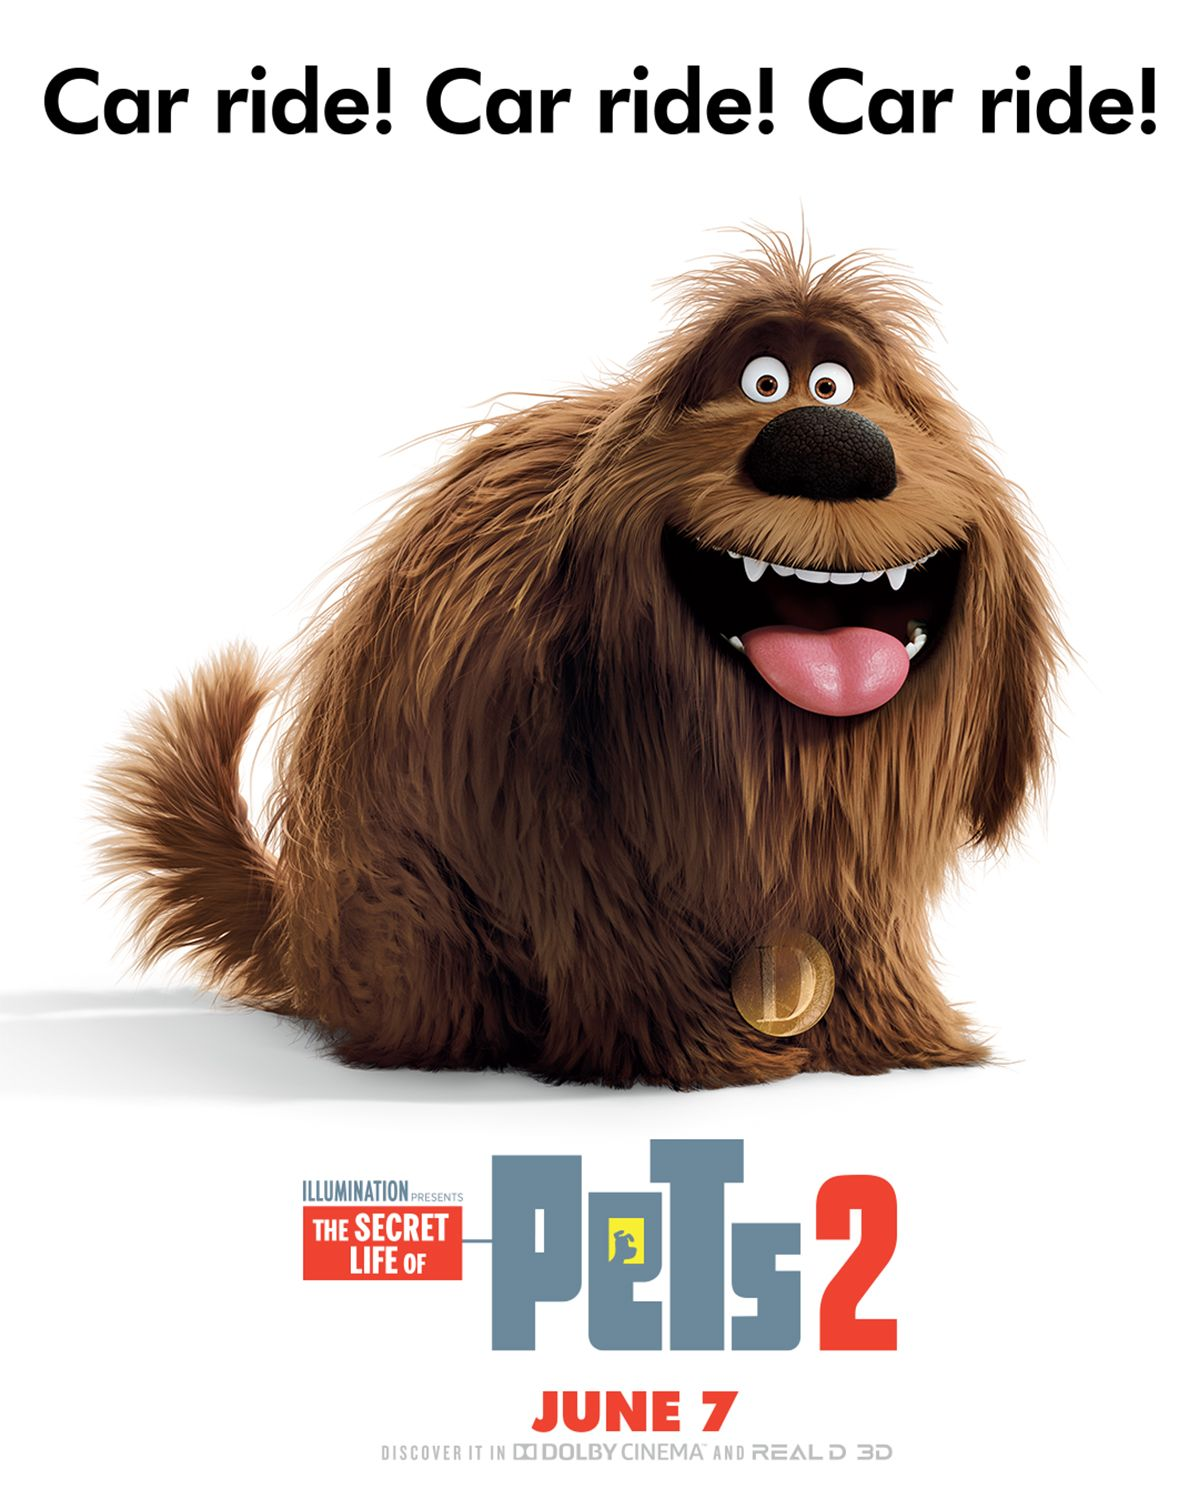 Eric Stonestreet Is Duke The Pets Return This Summer In The New Movie The Secret Life Of Pets 2 Coming To Theater Secret Life Of Pets Pets Movie Secret Life